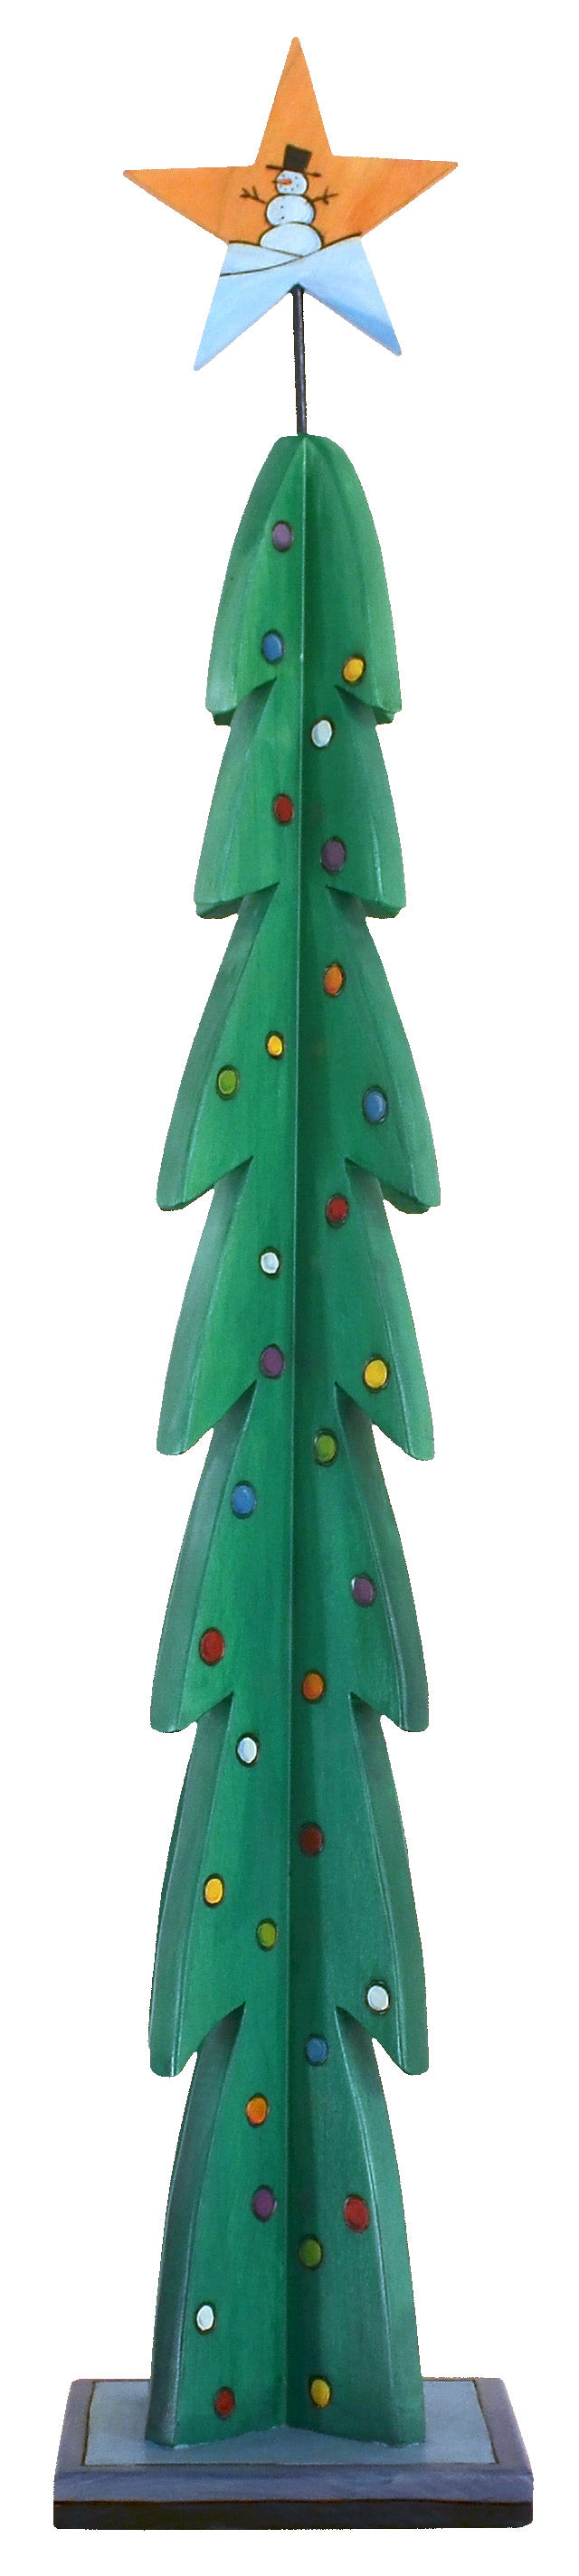 Large Christmas Tree Sculpture